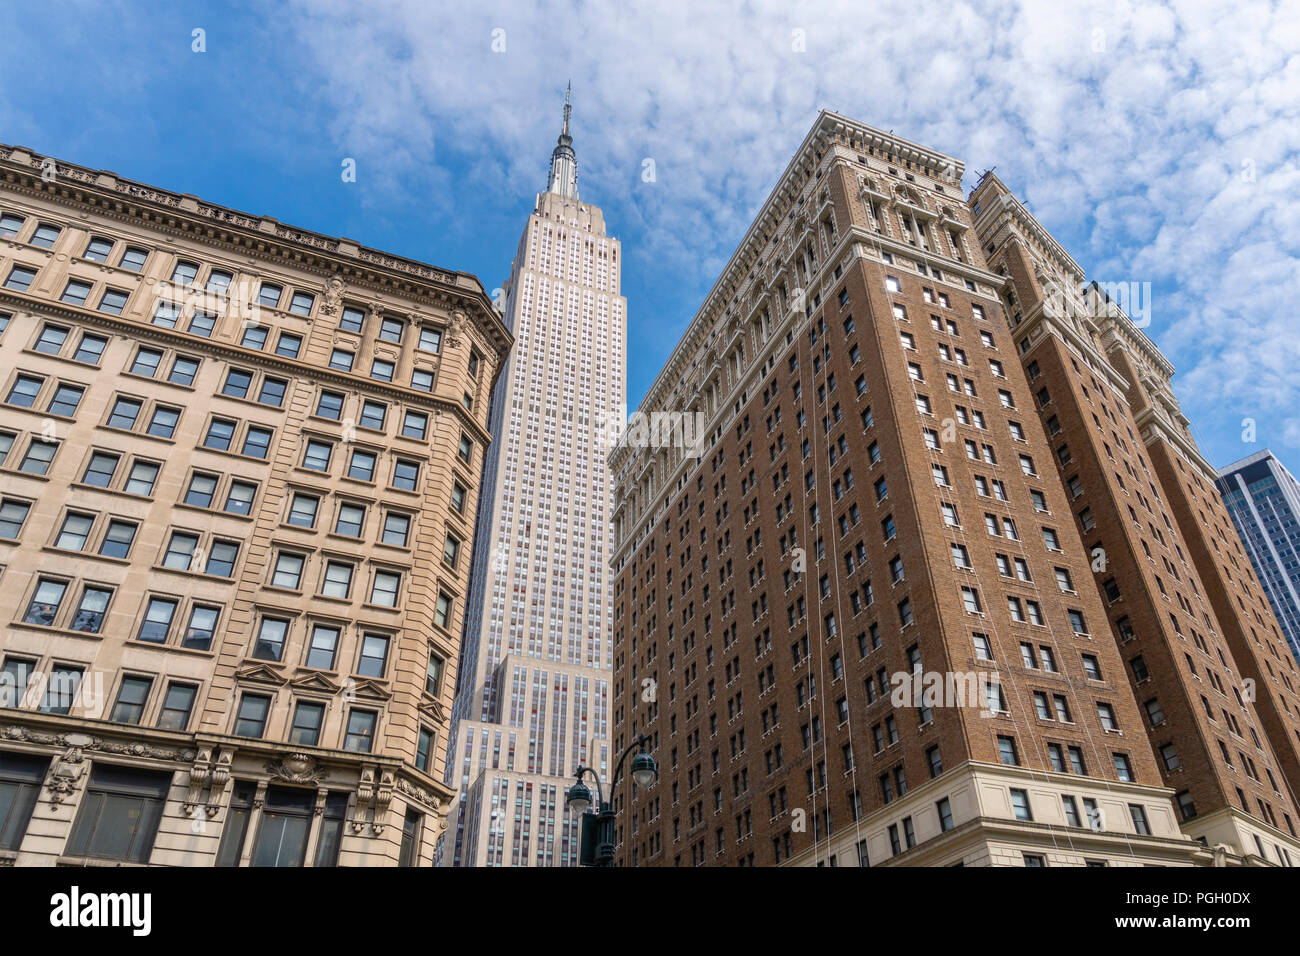 Empire State Building in New York City - Stock Image